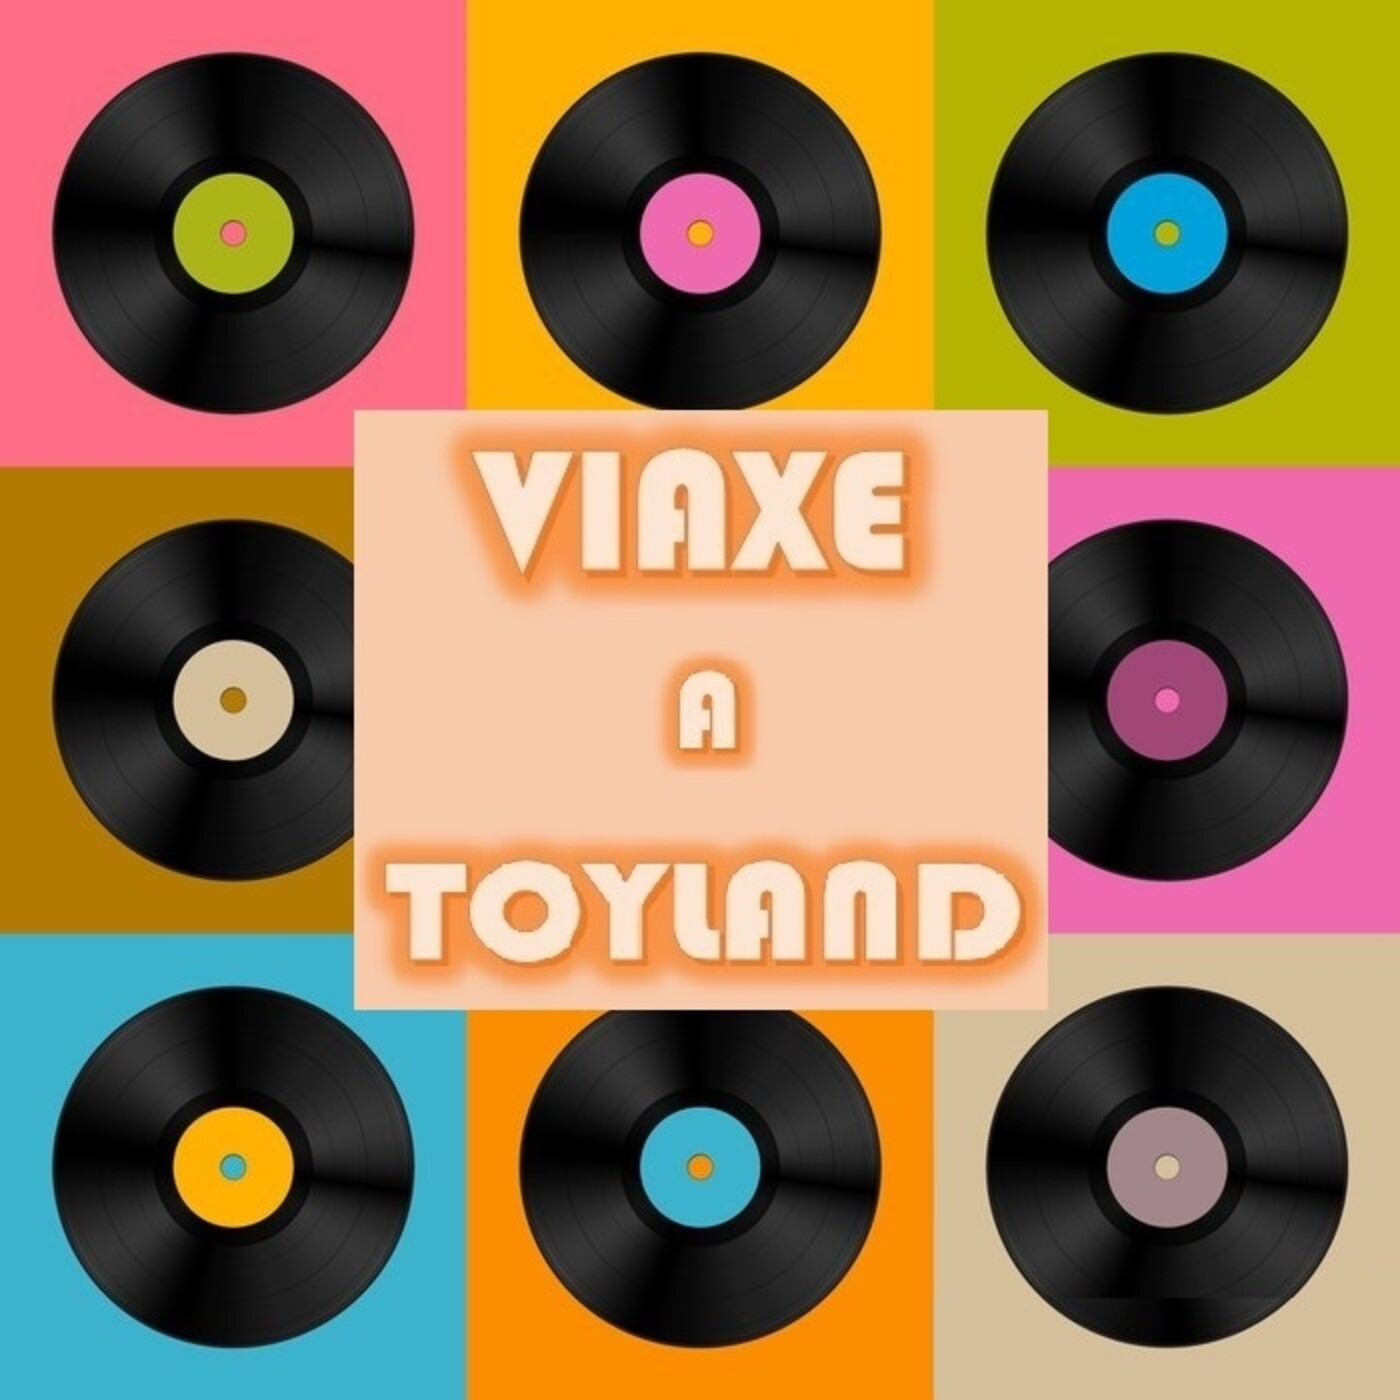 Viaxe a Toyland 156 - Jean Knight [...] The Yardbirds